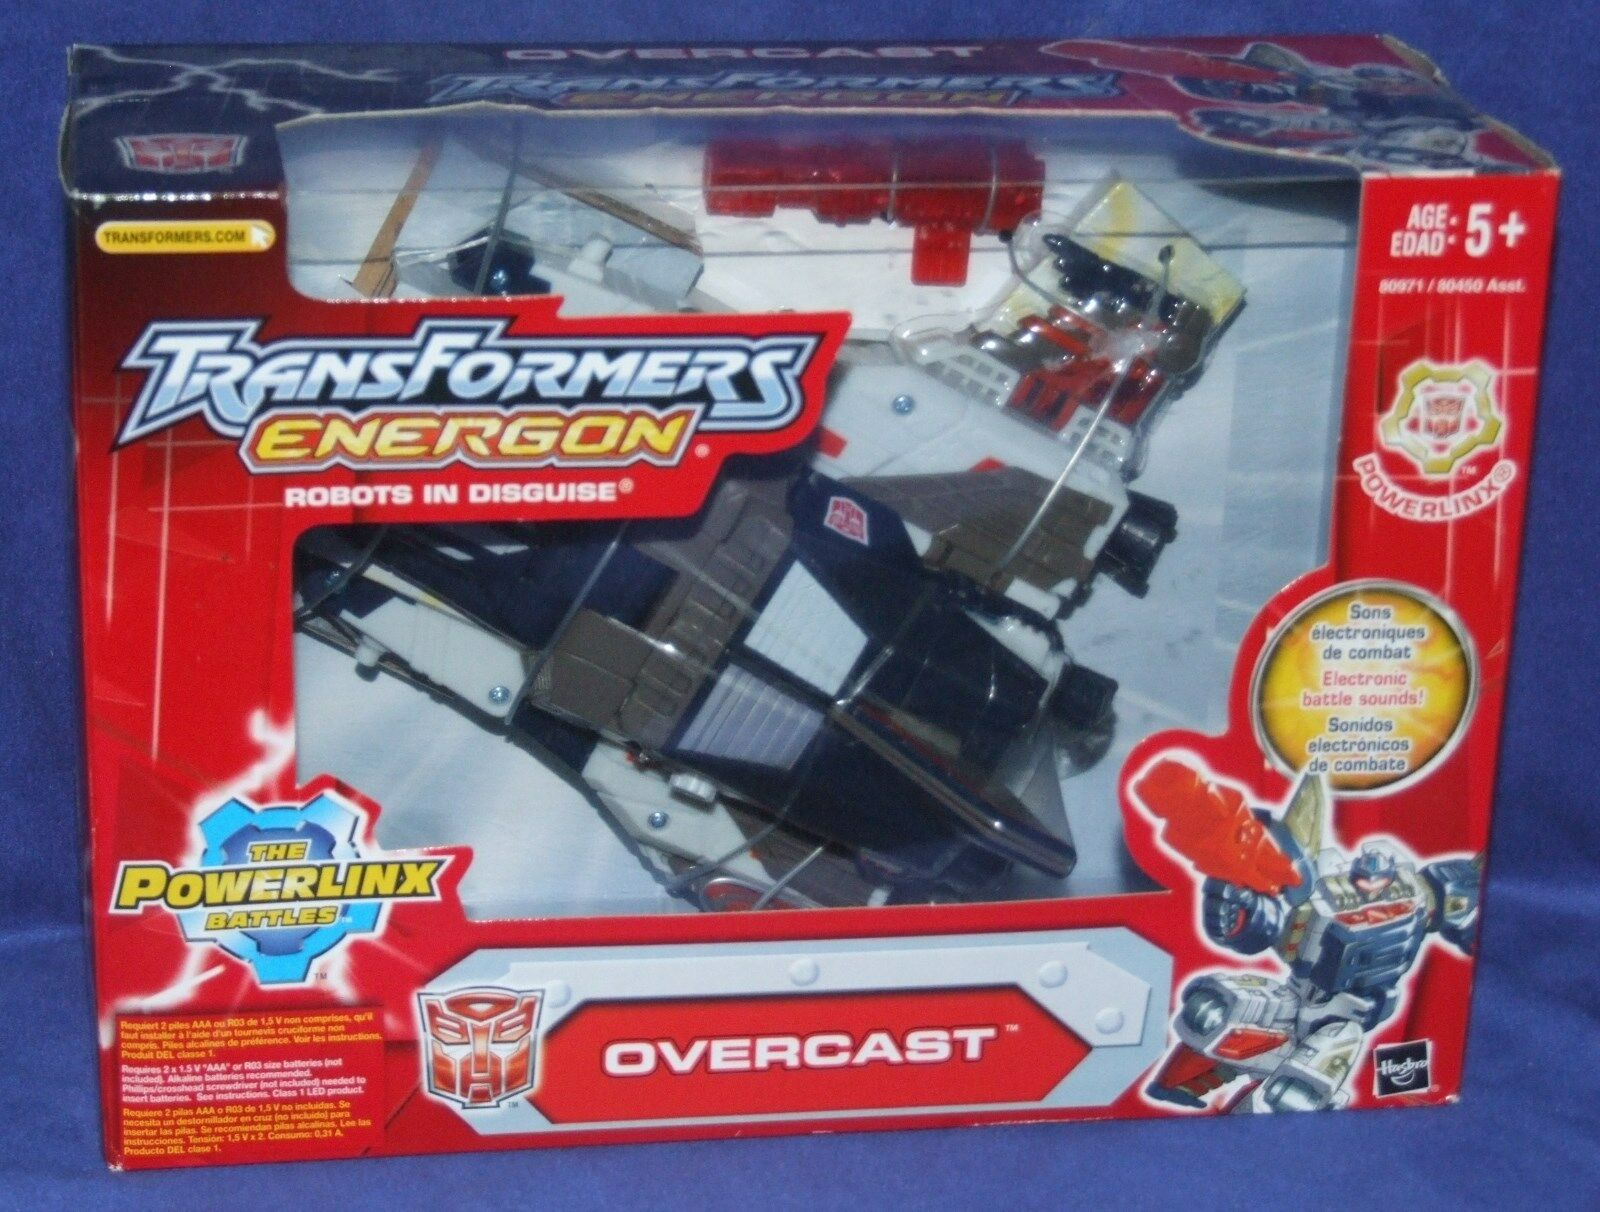 Transformers Energon Overcast Powerlinx Factory Sealed New Electronic Sound 2003